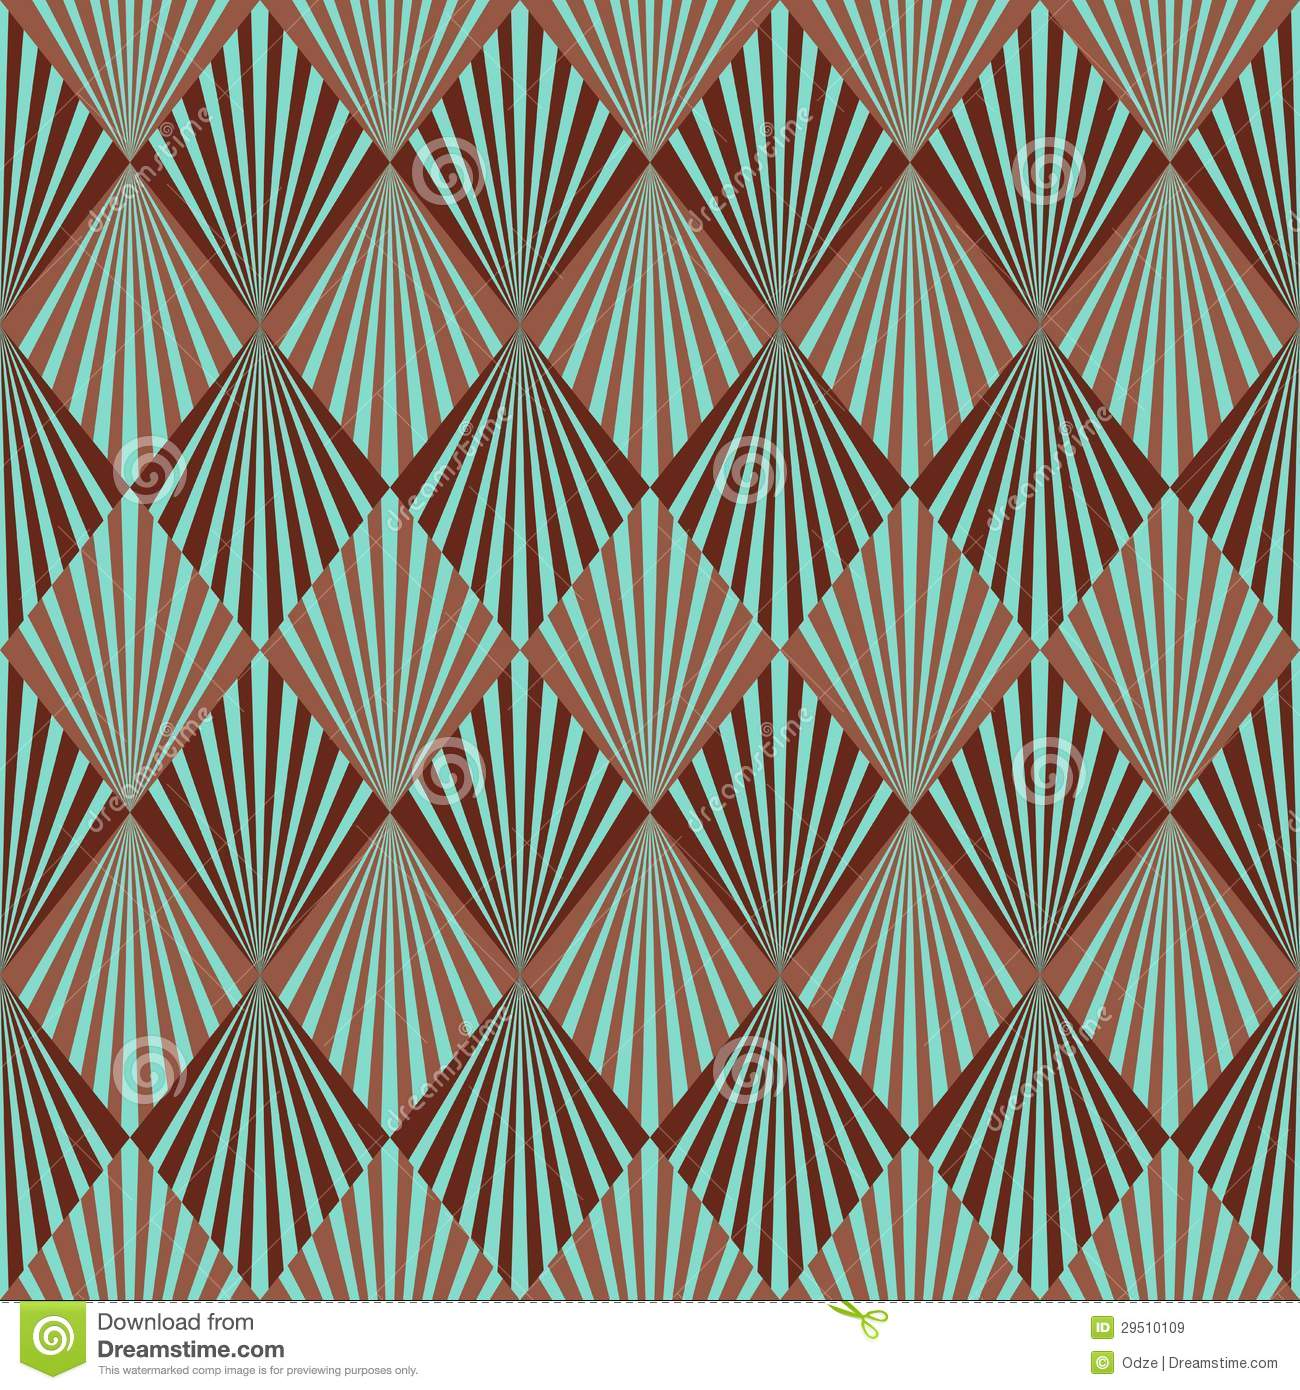 Art Deco Pattern Royalty Free Stock Images - Image: 29510109: https://www.dreamstime.com/royalty-free-stock-images-art-deco...